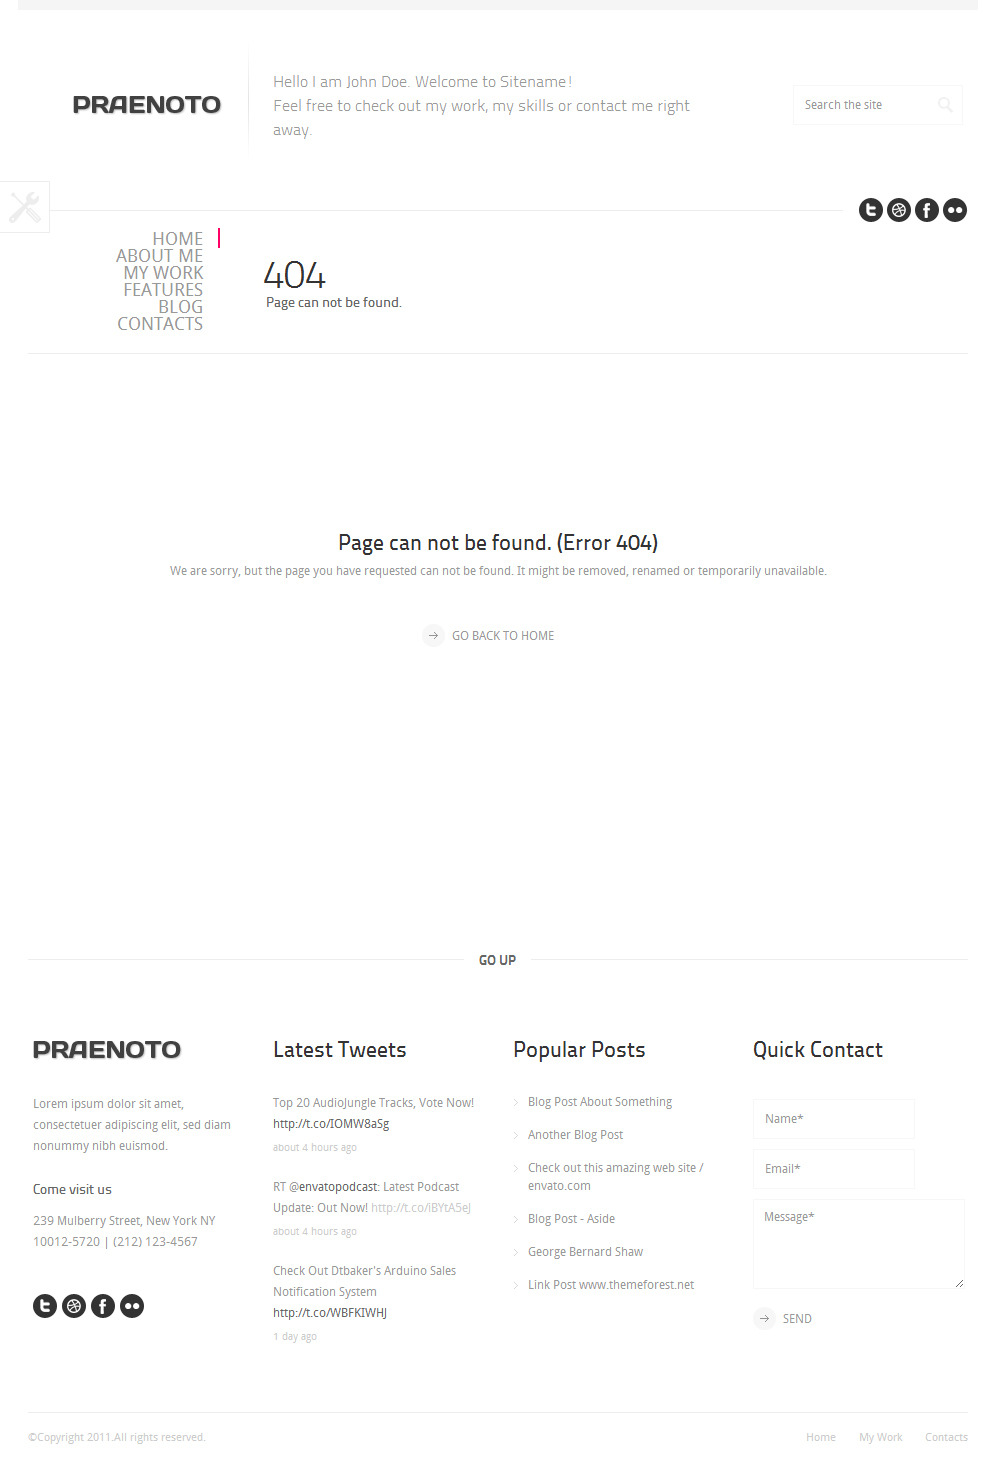 Praenoto - Clean & Minimalist WordPress Theme - Screenshot 8. 404 Page notfound error page.